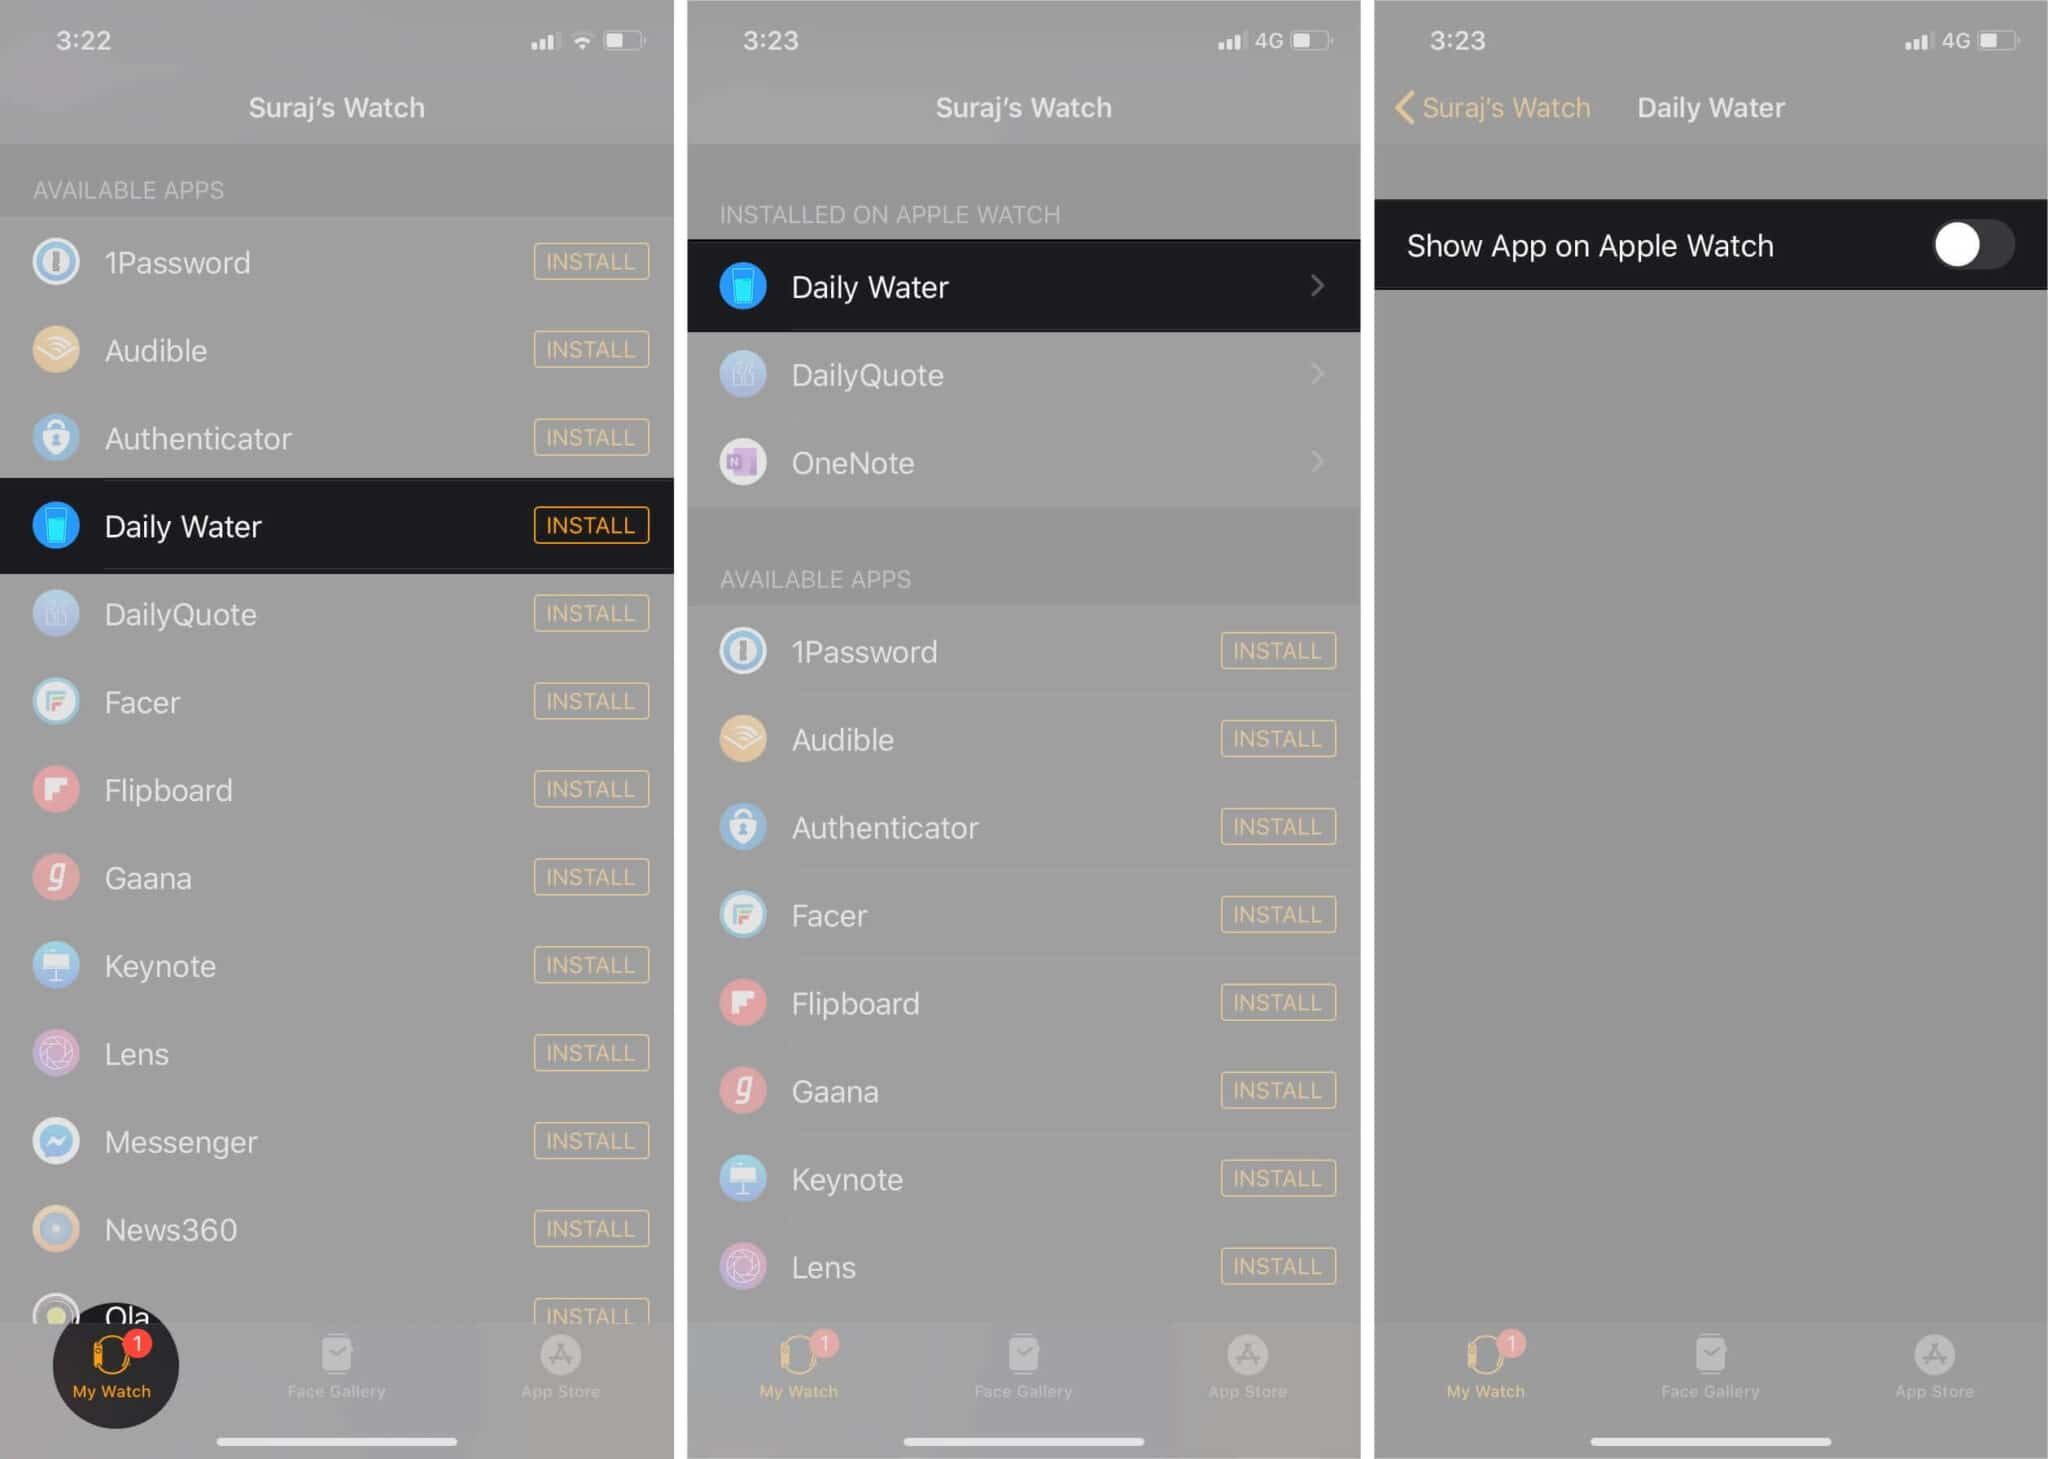 Use your iPhone to Manage your Watch Apps